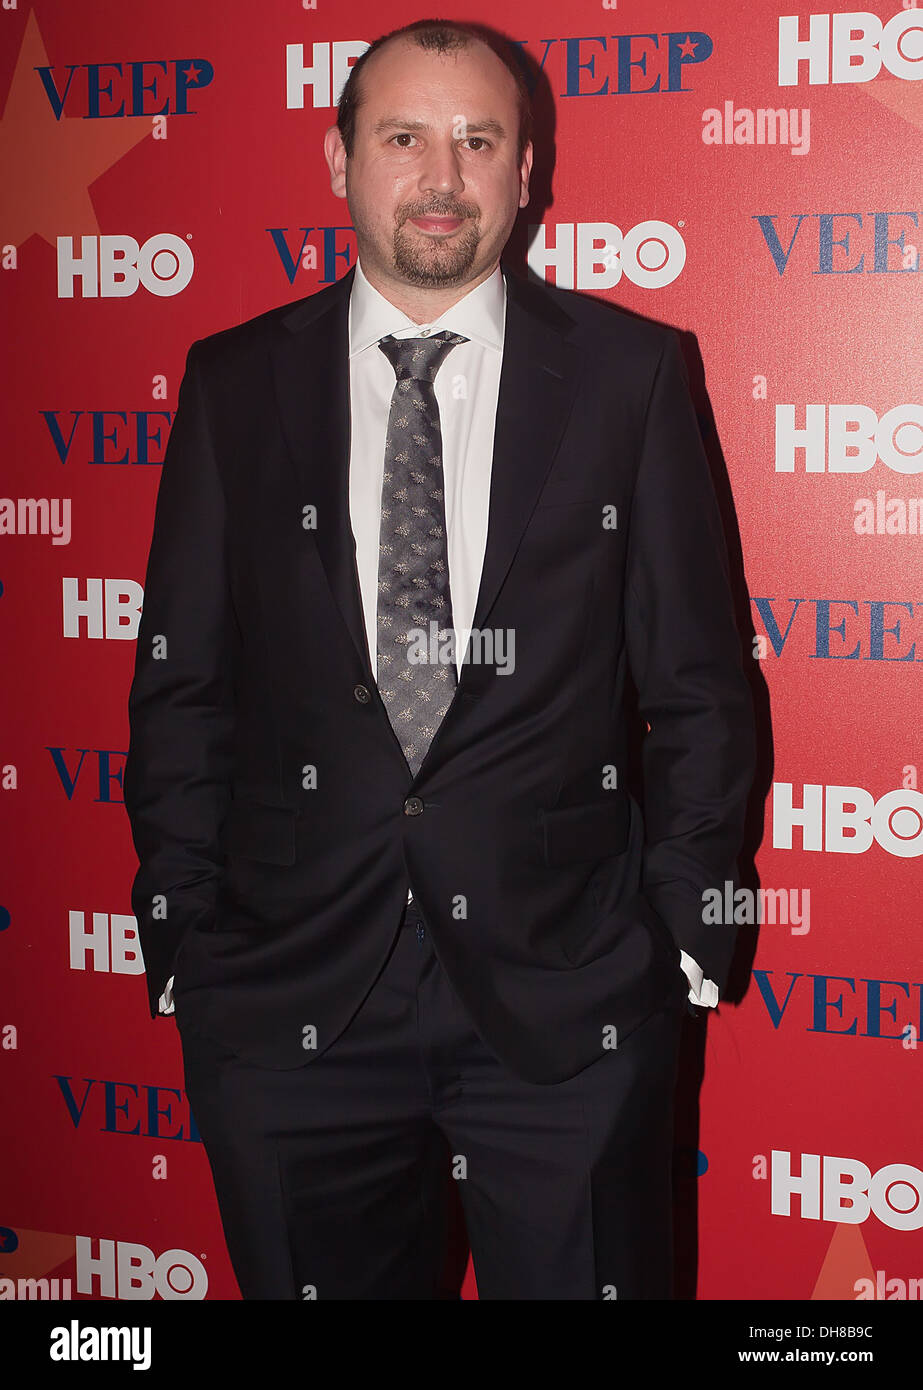 Tony Roche attending a screening of New HBO series Veep at Time